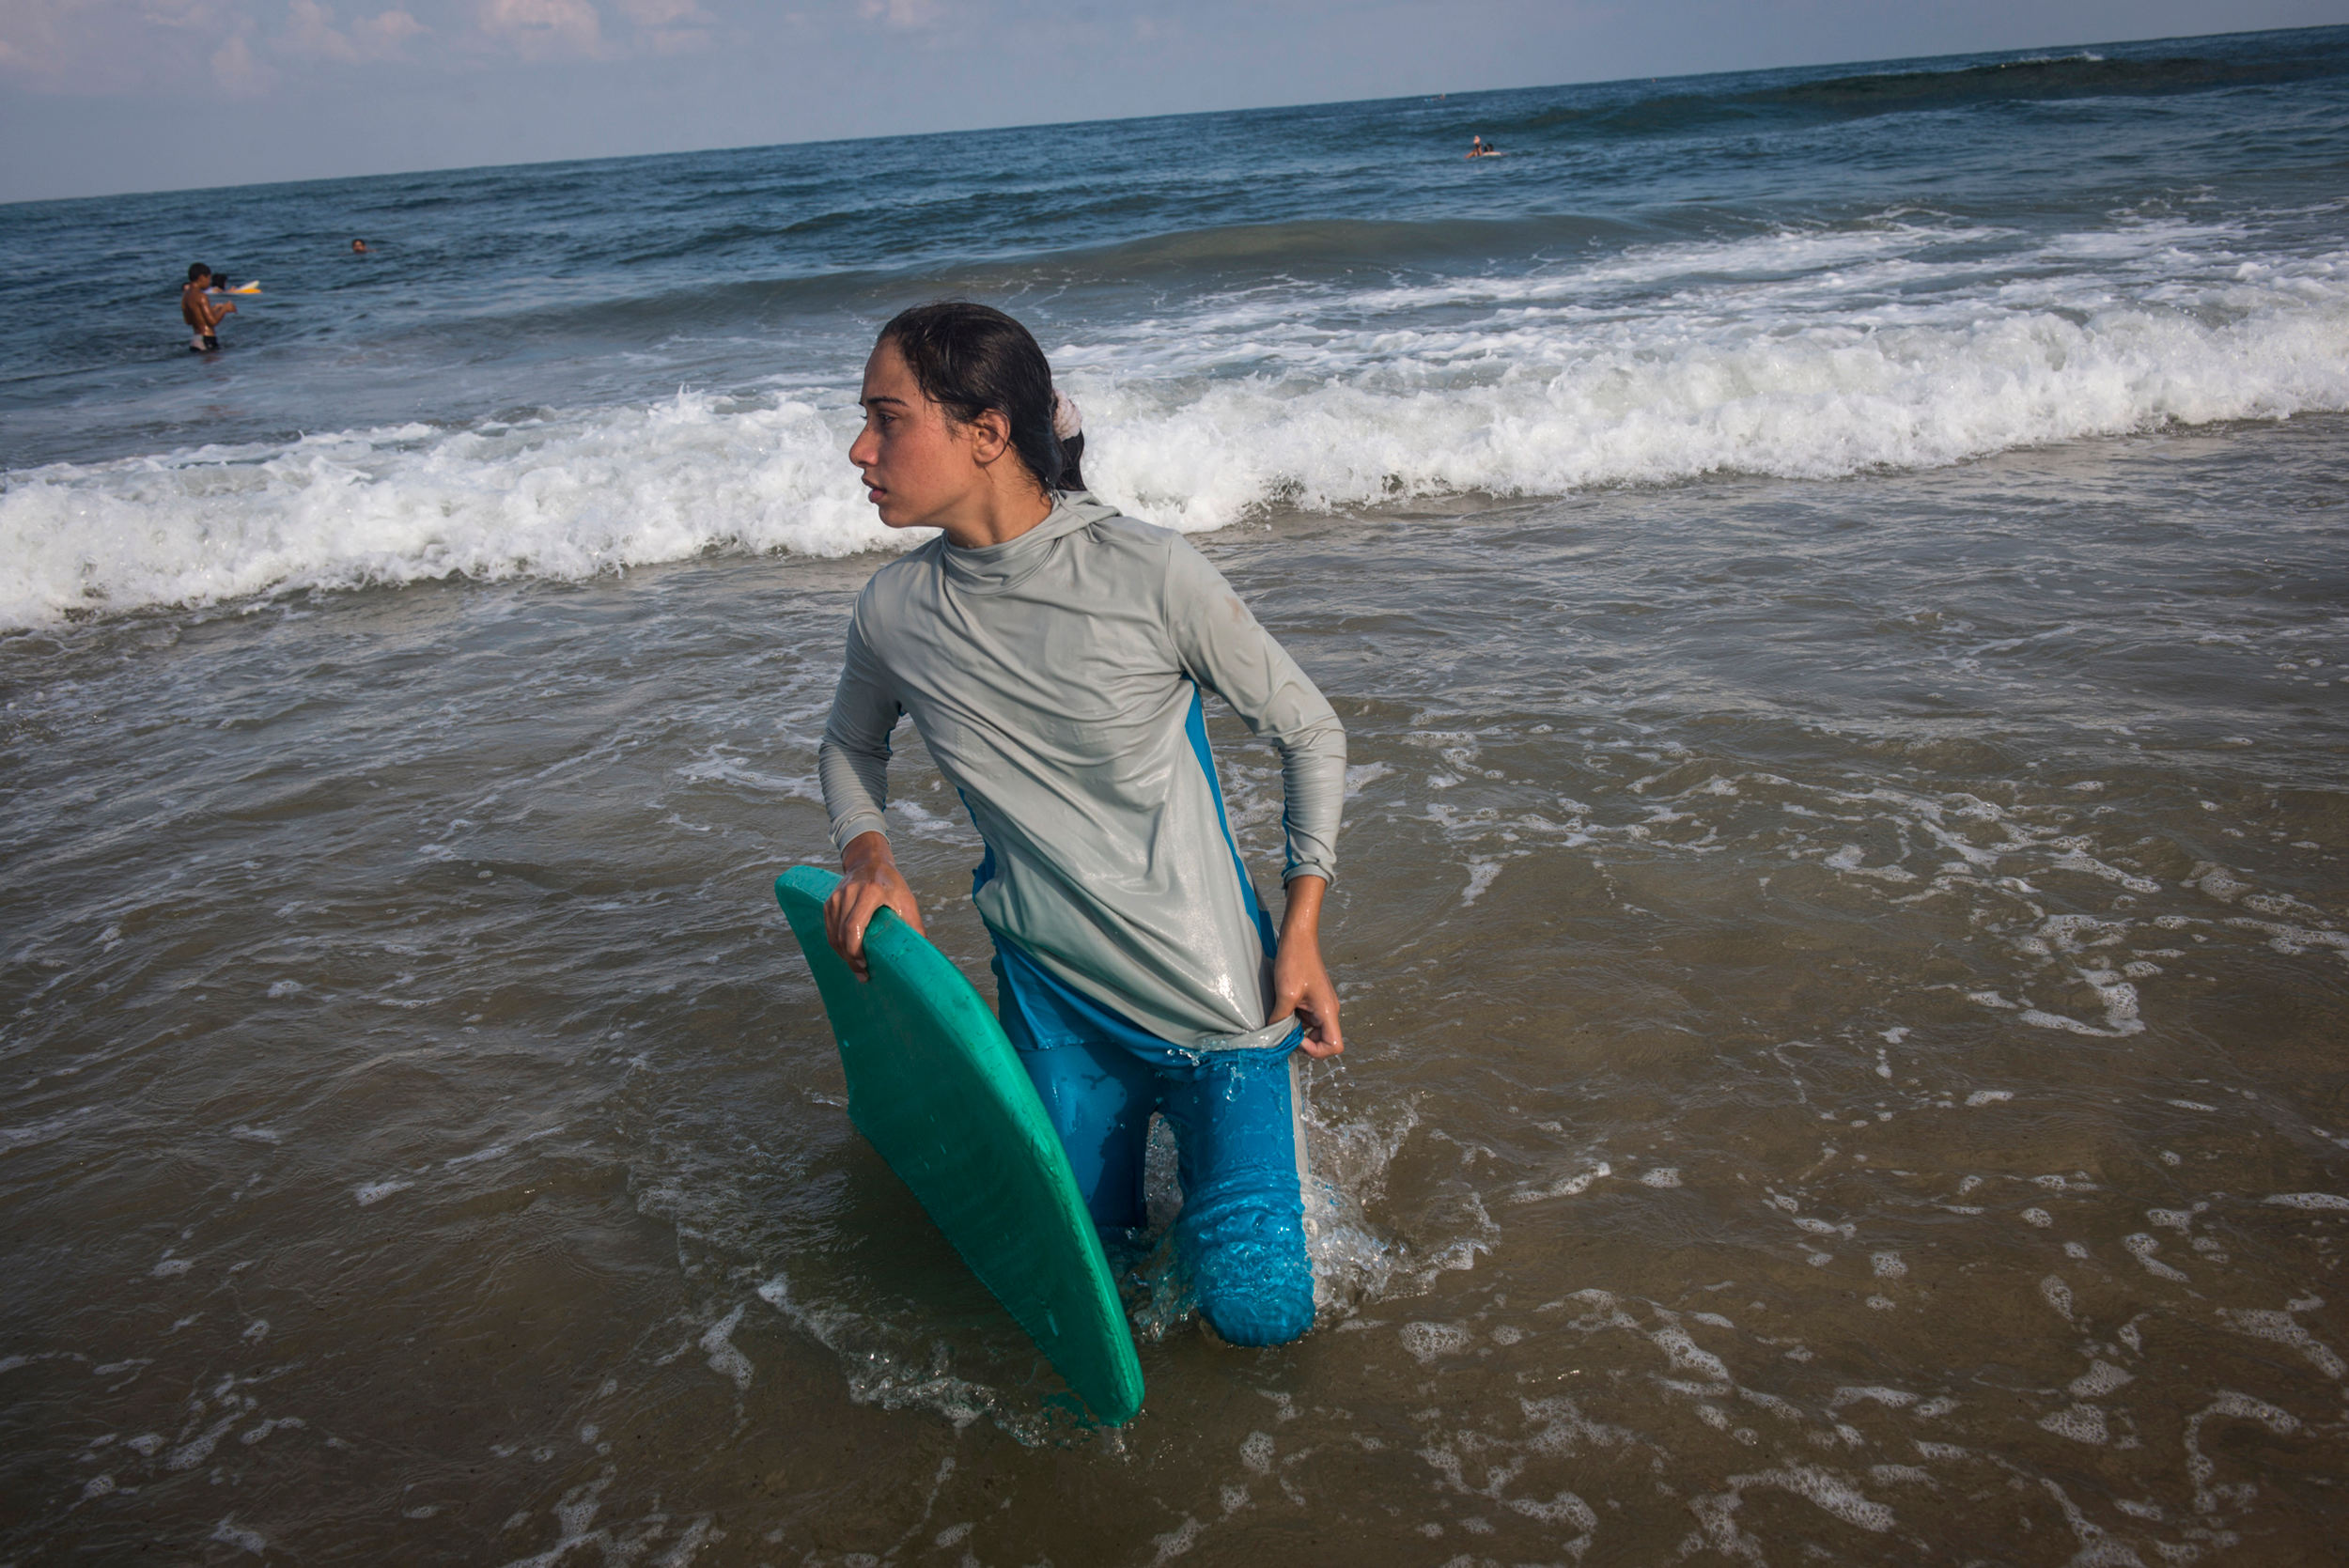 For many Gazans the sea is the only place they can be without being reminded of their isolation. Female Surfer, Sabah Abu Ghanem ,14 and her sister surf early in the morning outside of Gaza city. The sisters place first in many competitions inside the strip, but have never left the Gaza Strip to compete.